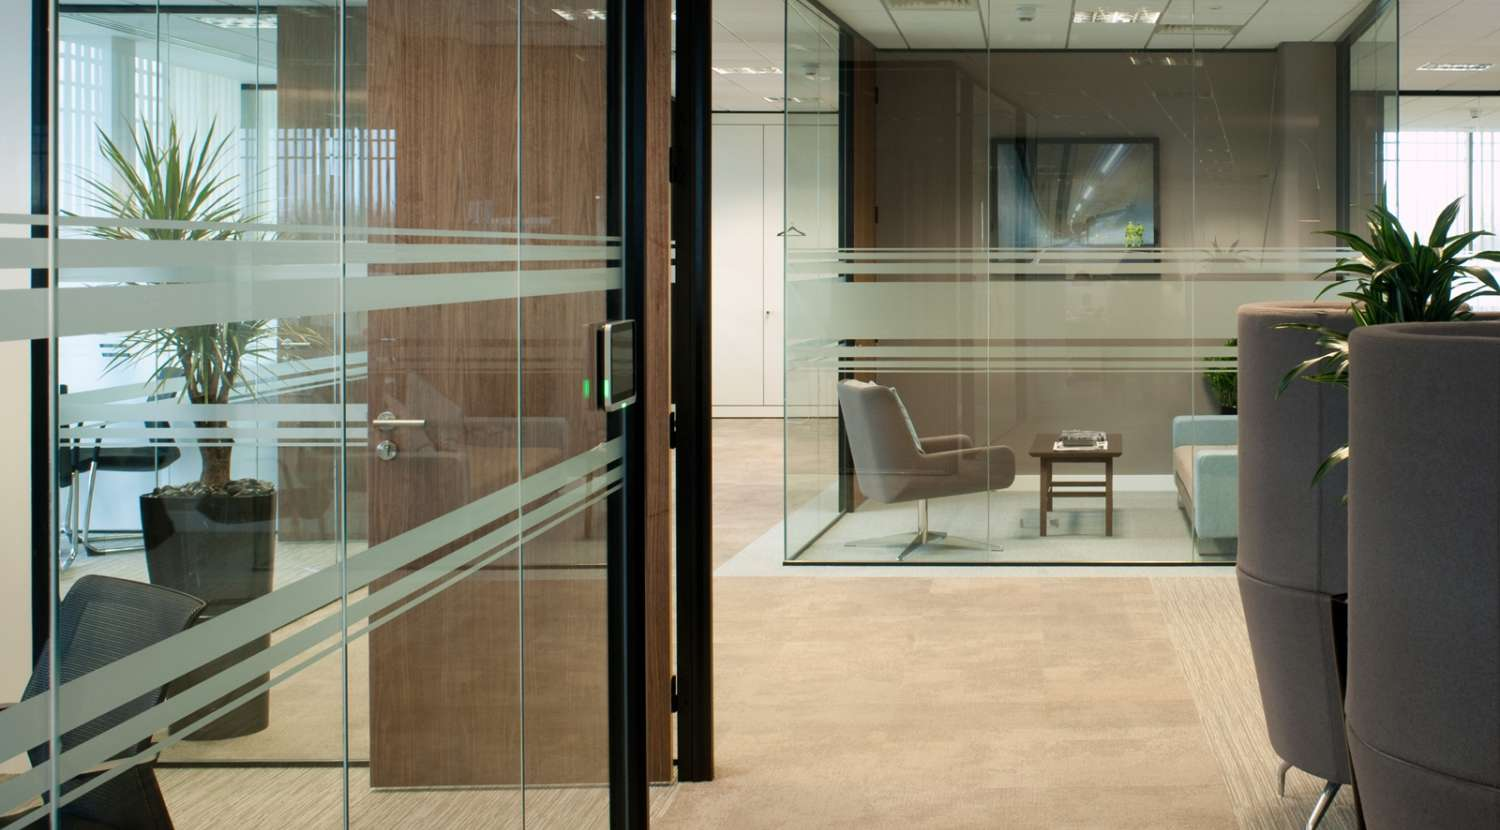 Glass paneling opens up with halways